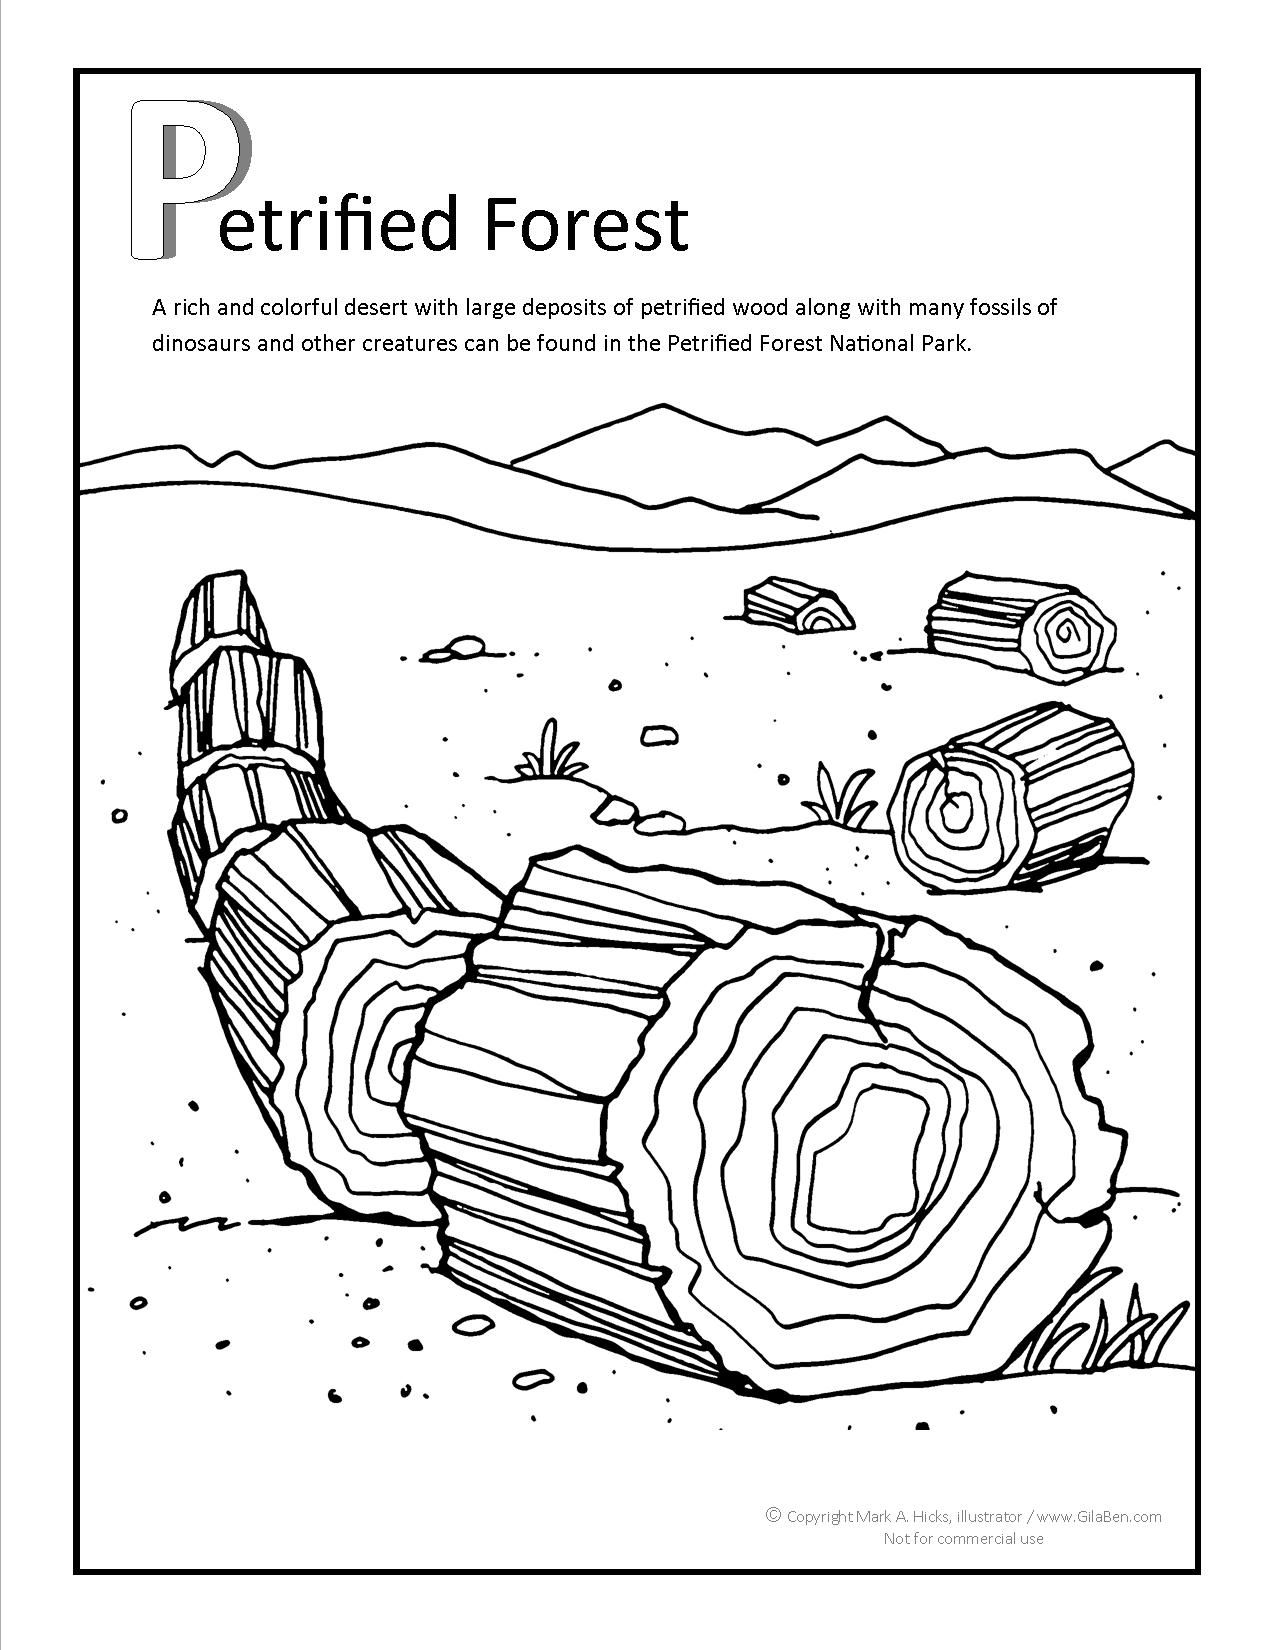 Petrified Forest Coloring Page More Fun Printable